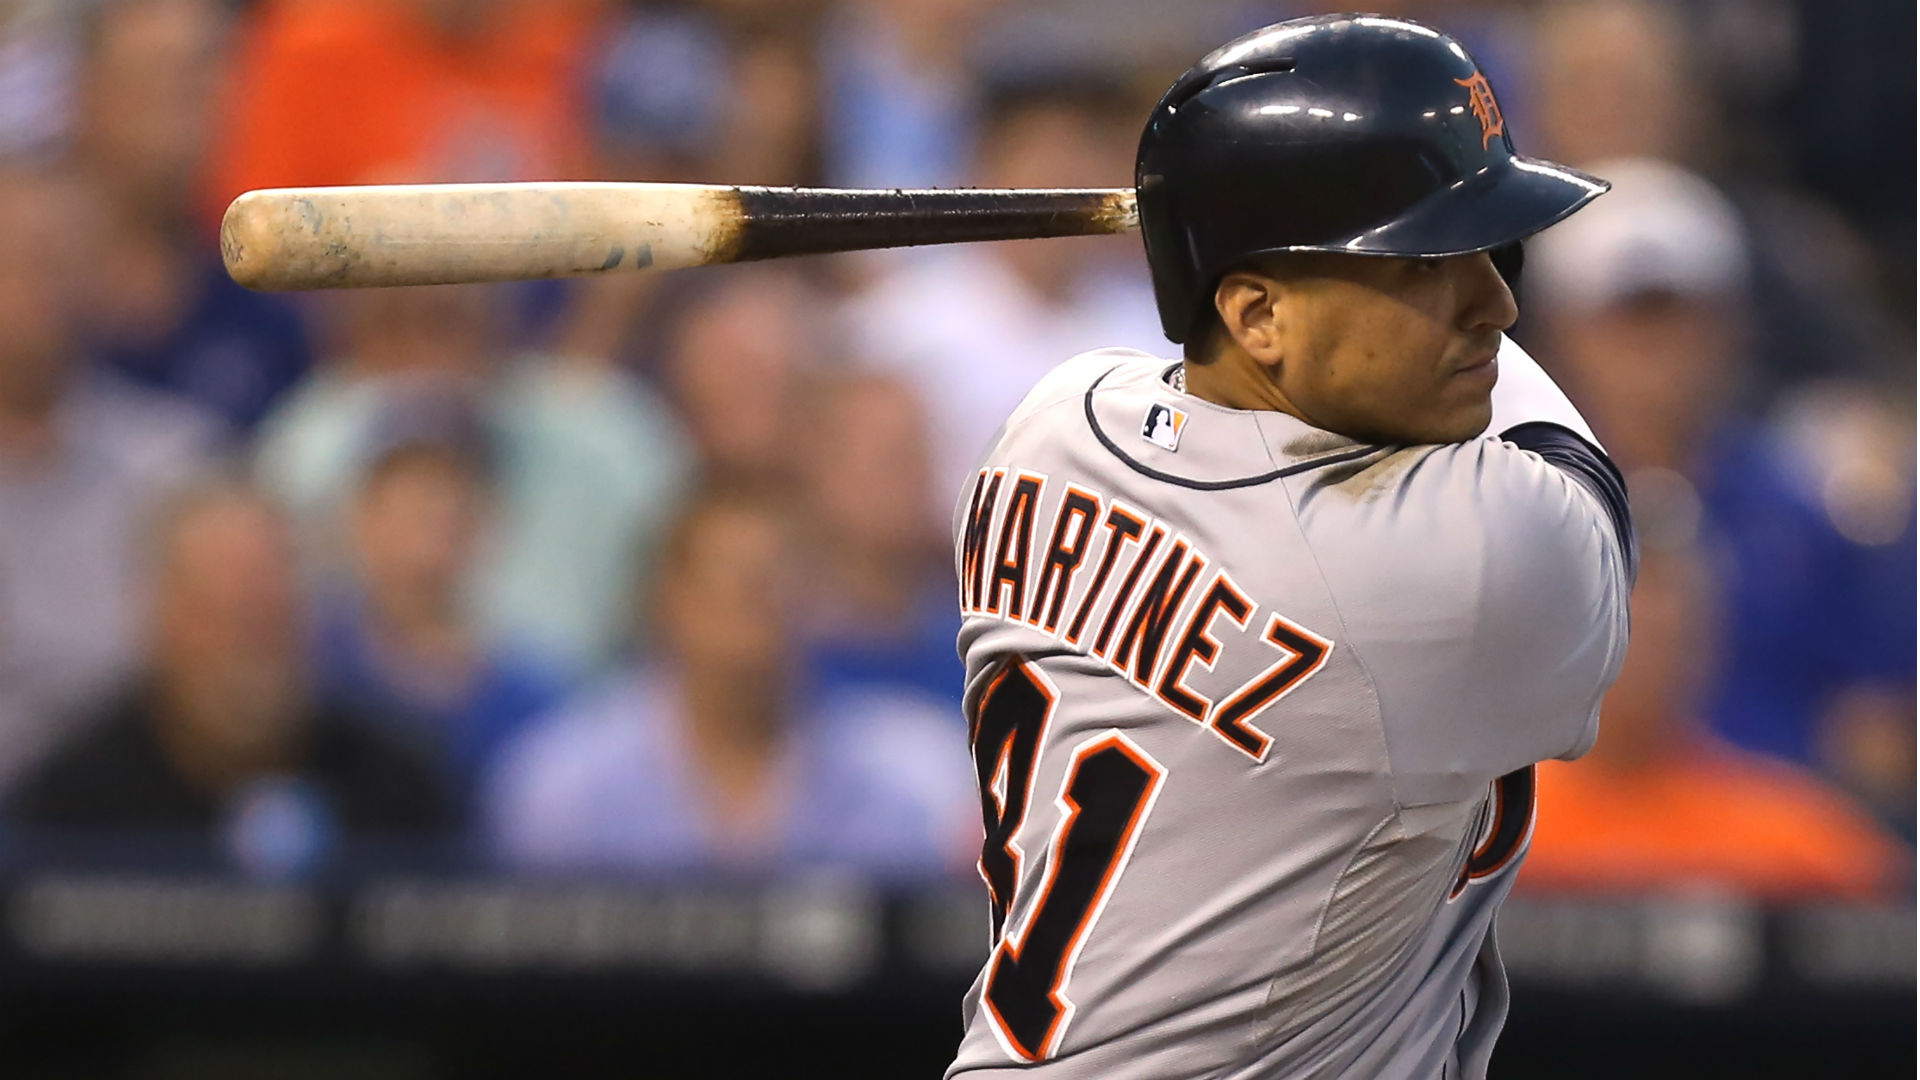 Season over: Victor Martinez to have cardiac ablation procedure